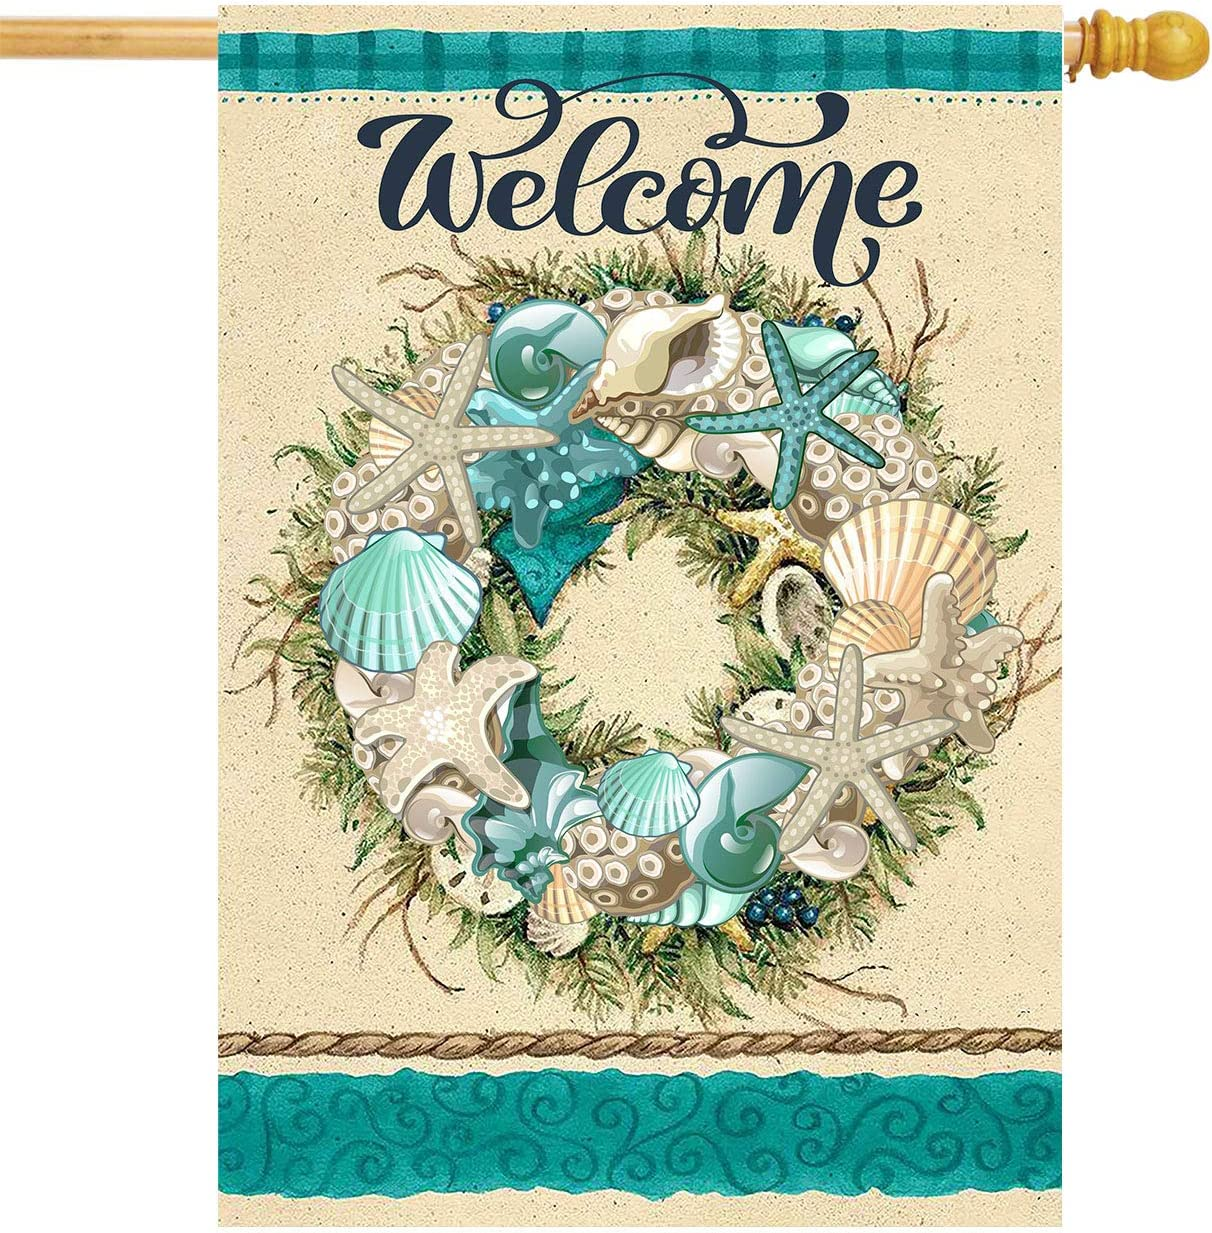 Summer Shell Coastal Wreath House Flag 28 x 40 Double Sided Retro Starfish Coral Nautical Garden Yard Flags Welcome Hello Summer Outdoor Indoor Banner for Party Home Decorations